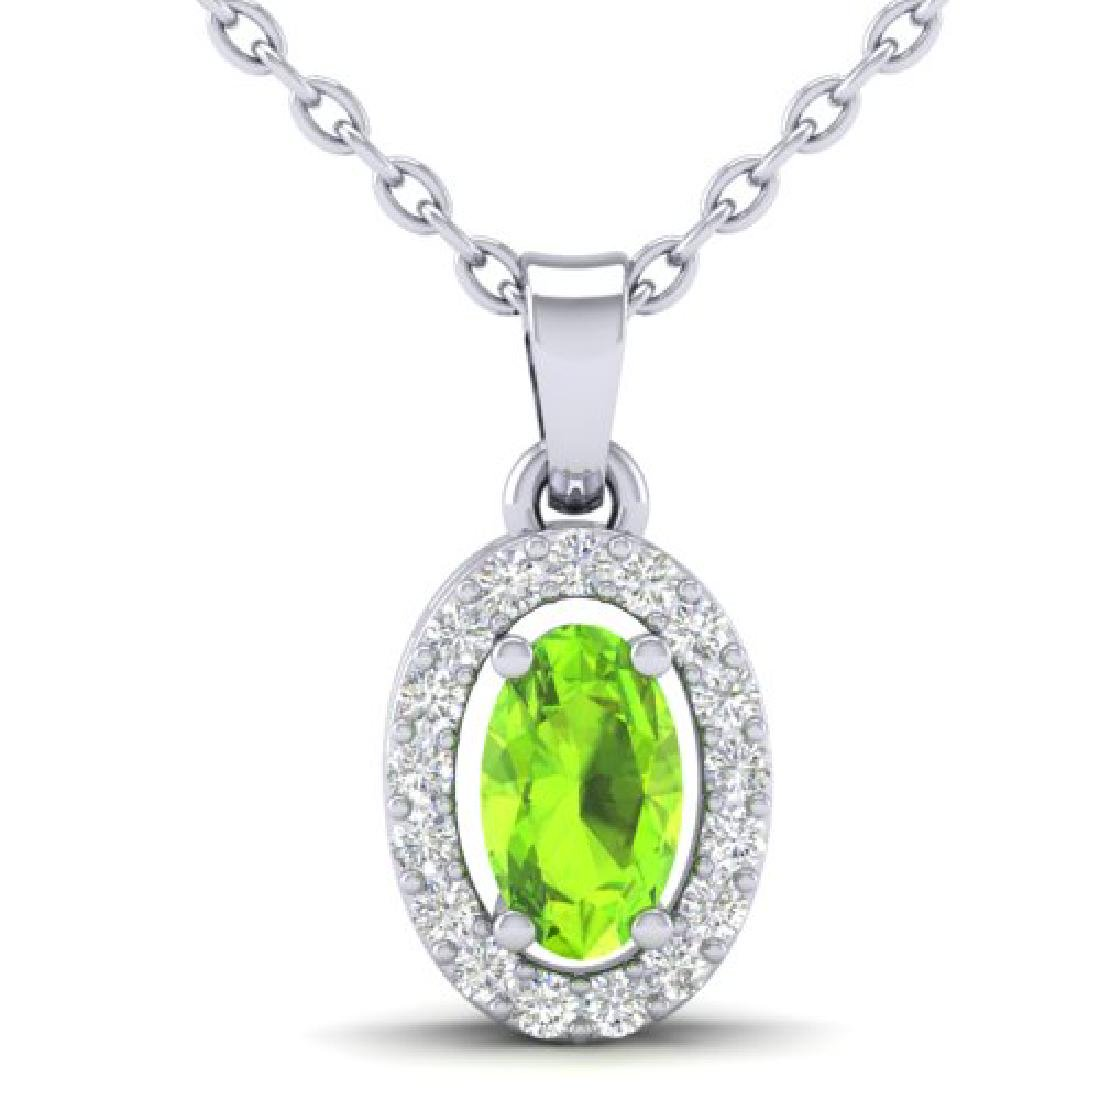 0.41 CTW Peridot & Micro Pave VS/SI Diamond Necklace